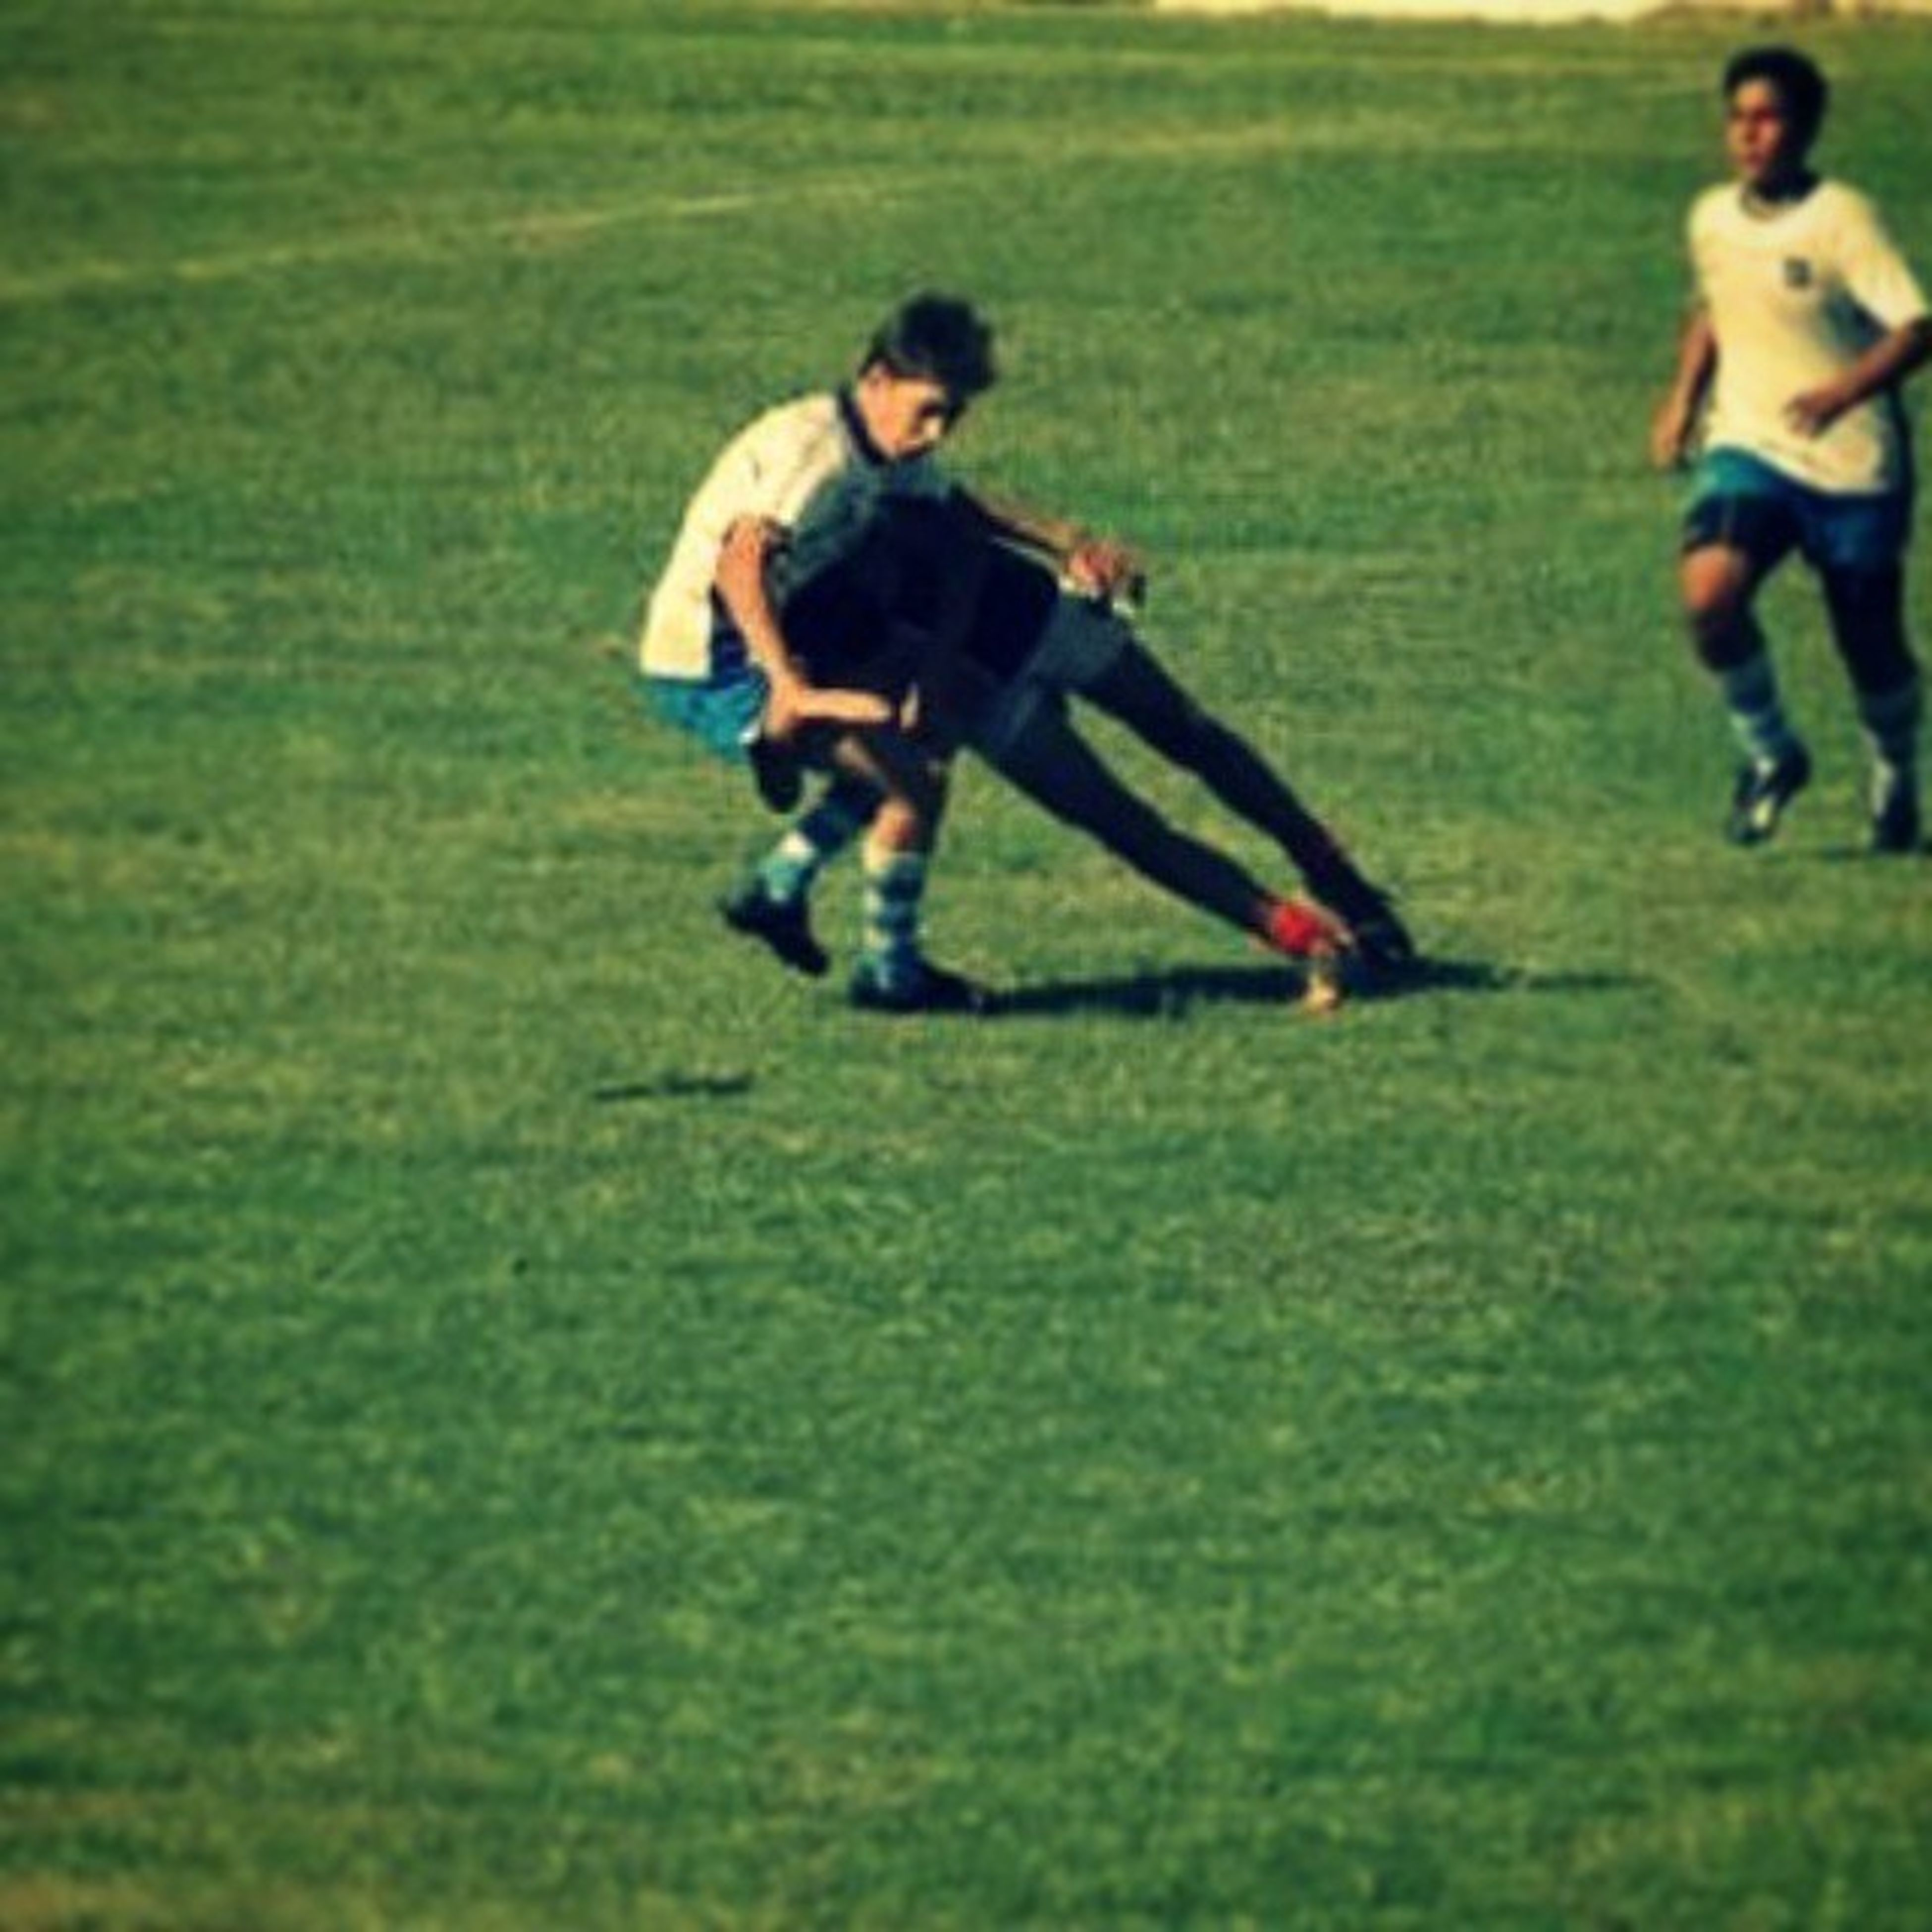 grass, lifestyles, leisure activity, person, full length, running, casual clothing, young men, field, fun, playing, playful, sport, happiness, grassy, boys, enjoyment, elementary age